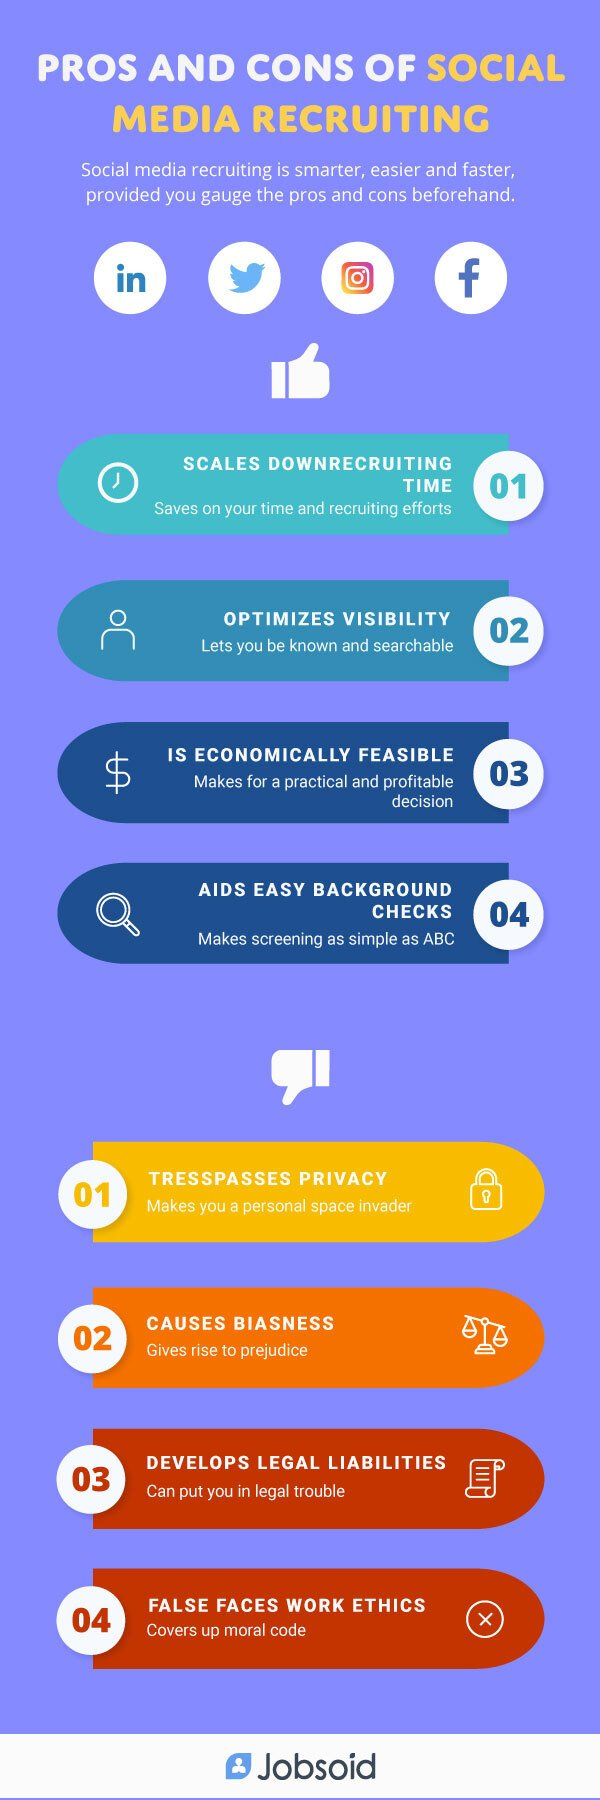 Pros and Cons of Social Media Recruiting - Infographic